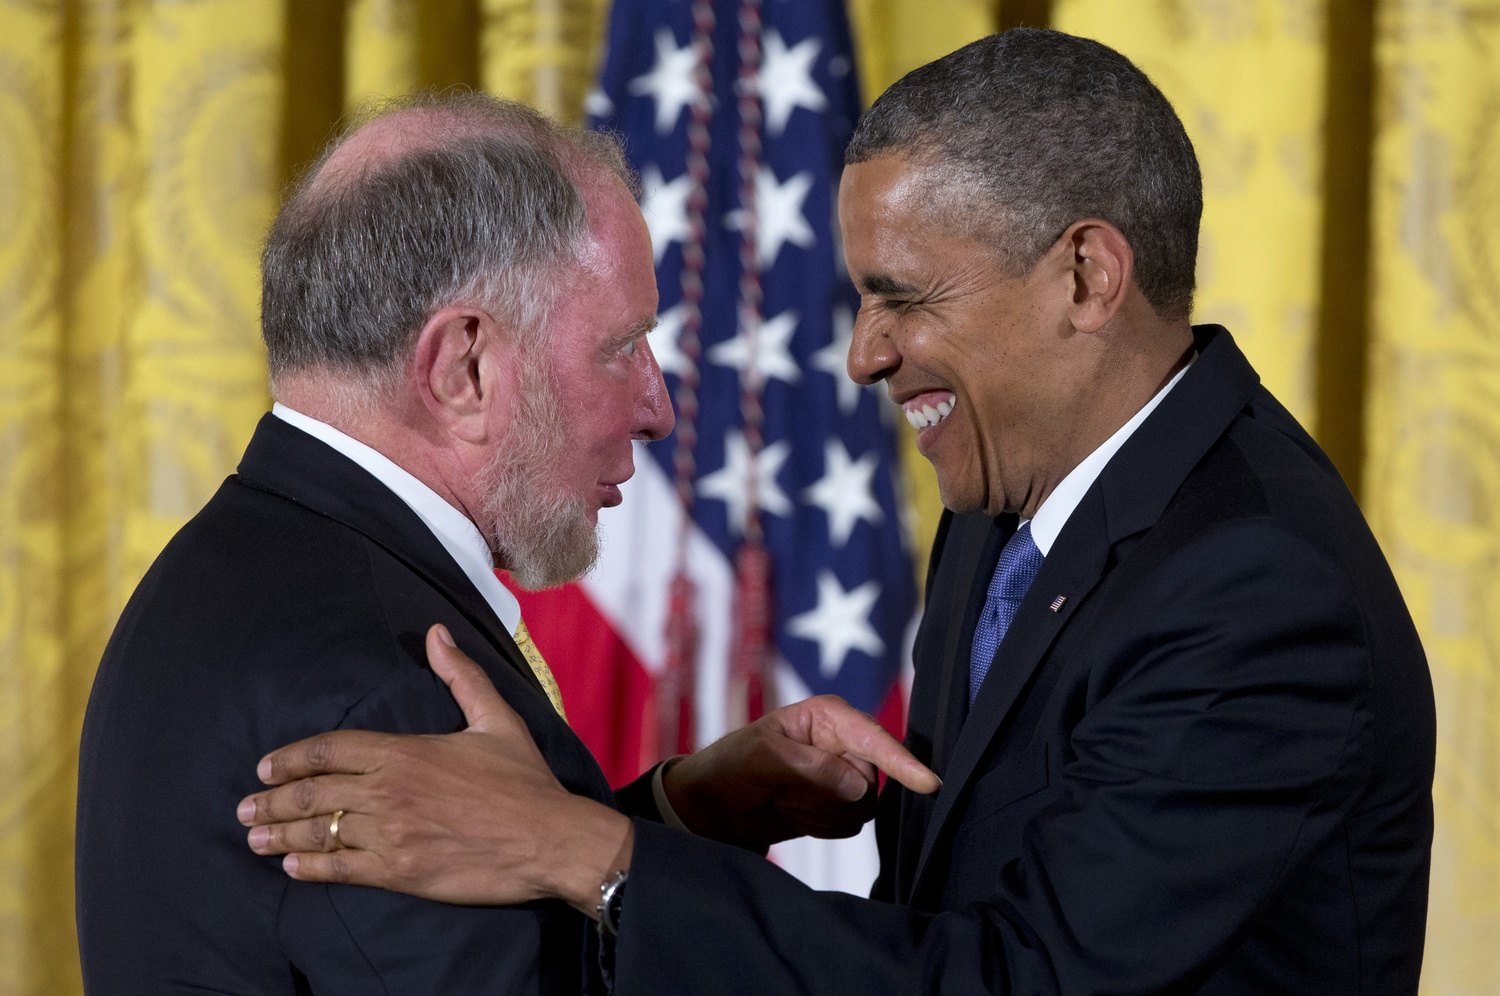 President Barack Obama laughs with Robert Putnam as he awards him the the 2012 National Humanities Medal during a ceremony in the East Room of White House on Wednesday.